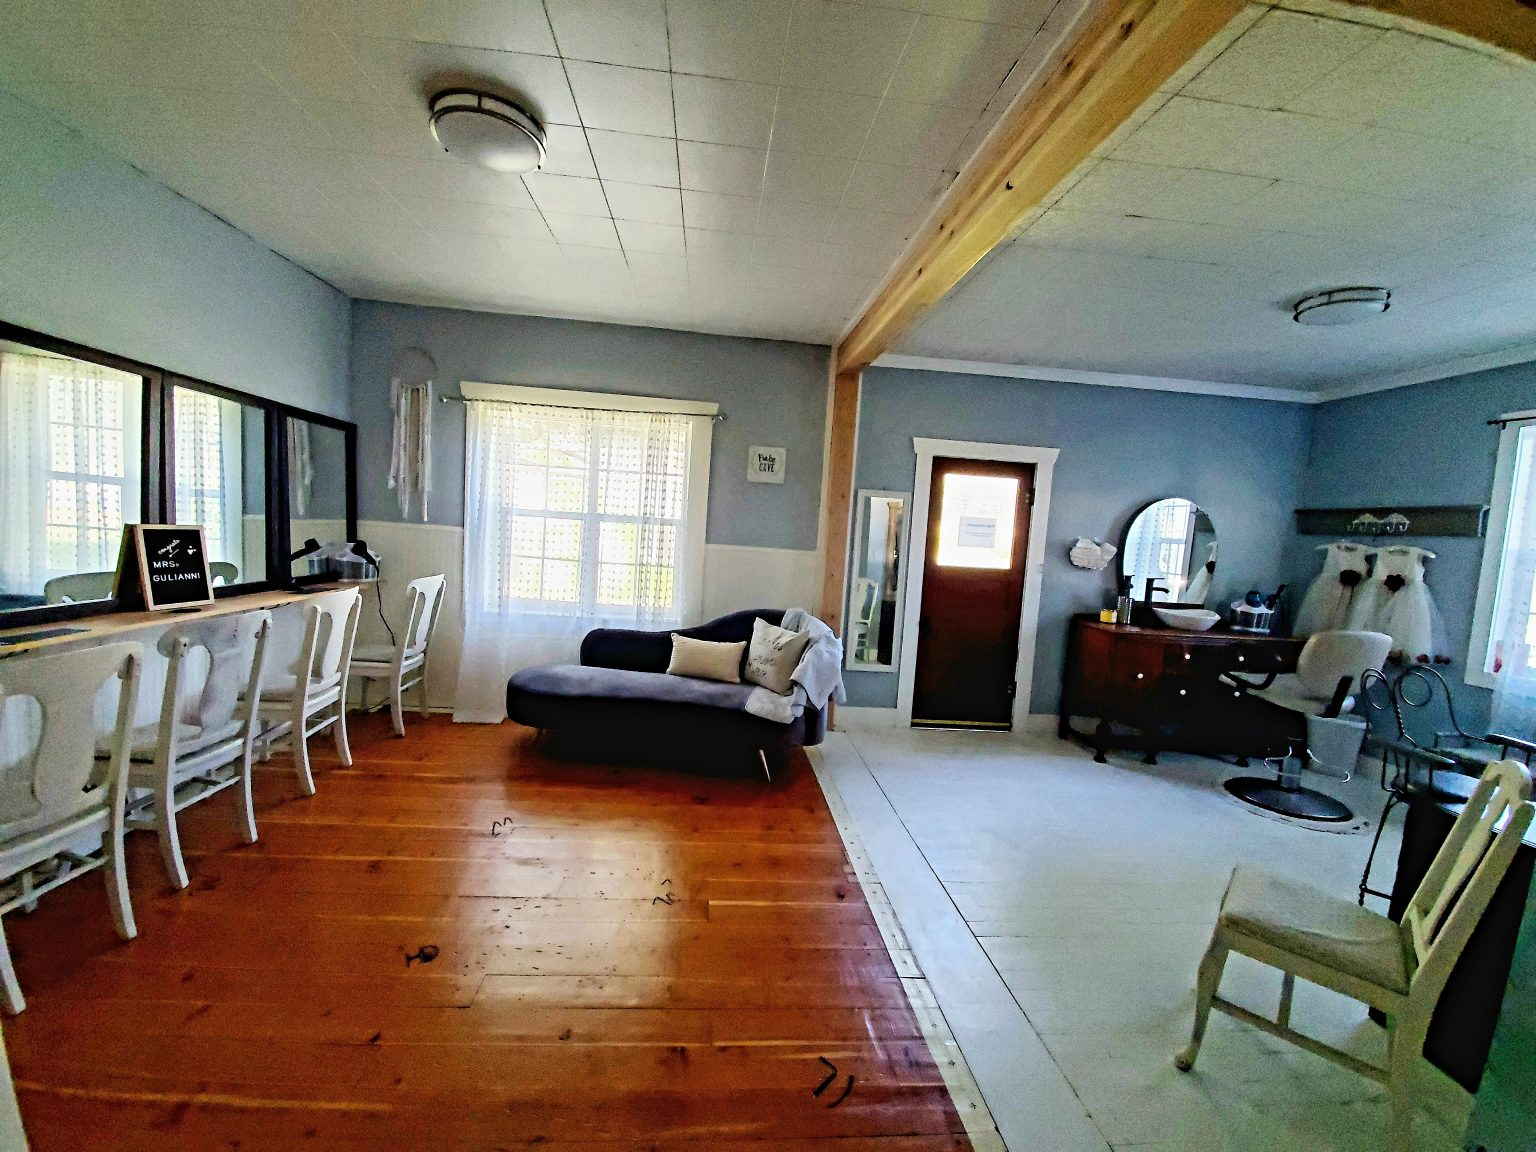 Enjoy the Bridal Suite with 6 make up stations and a full bathroom!